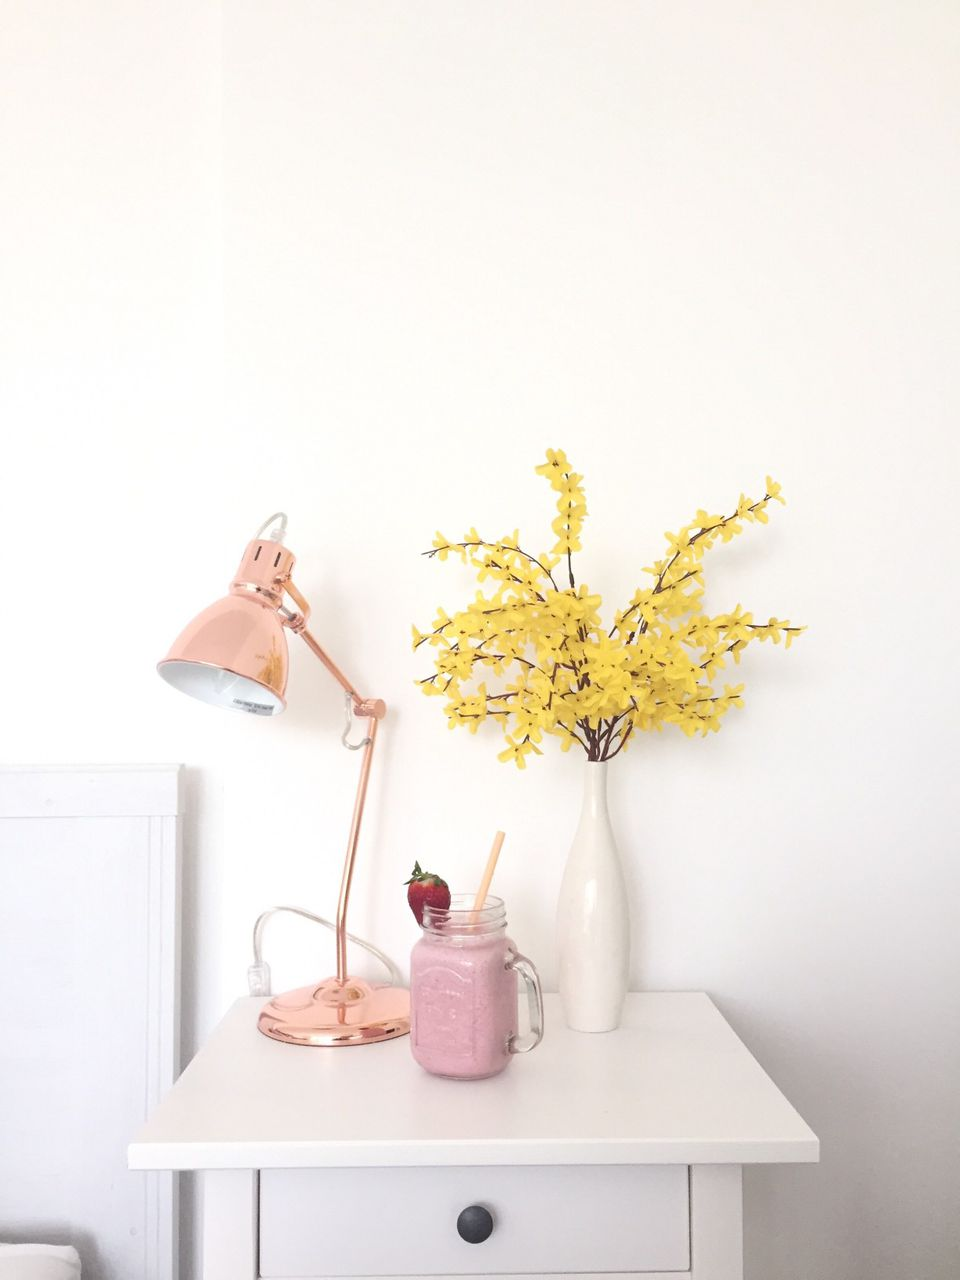 bedside lamp, flowers and breakfast smoothie